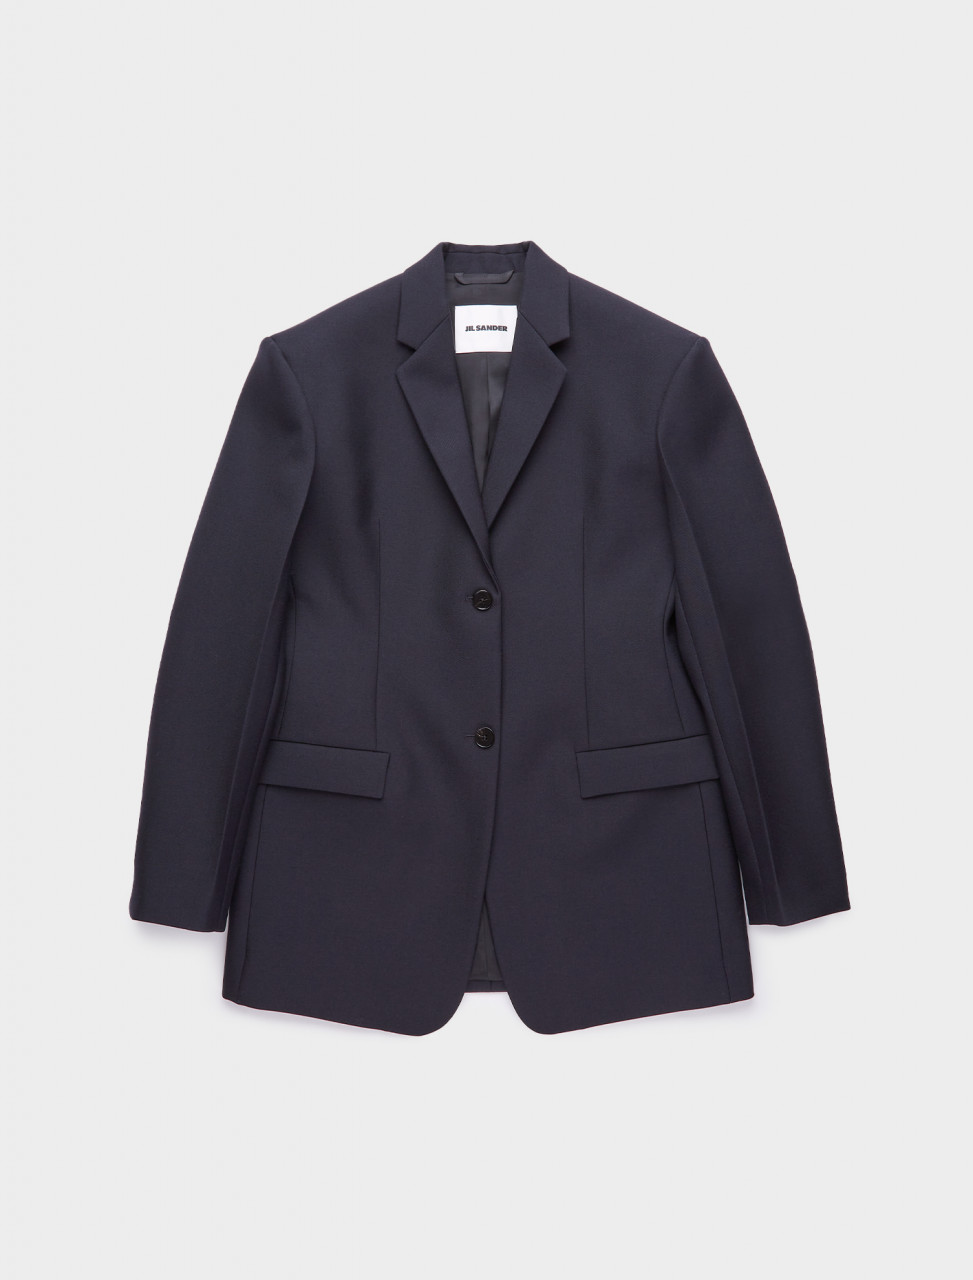 130-JSWR135910-WR201000-402 JIL SANDER OVERSIZED TWO BUTTON BLAZER DARK BLUE